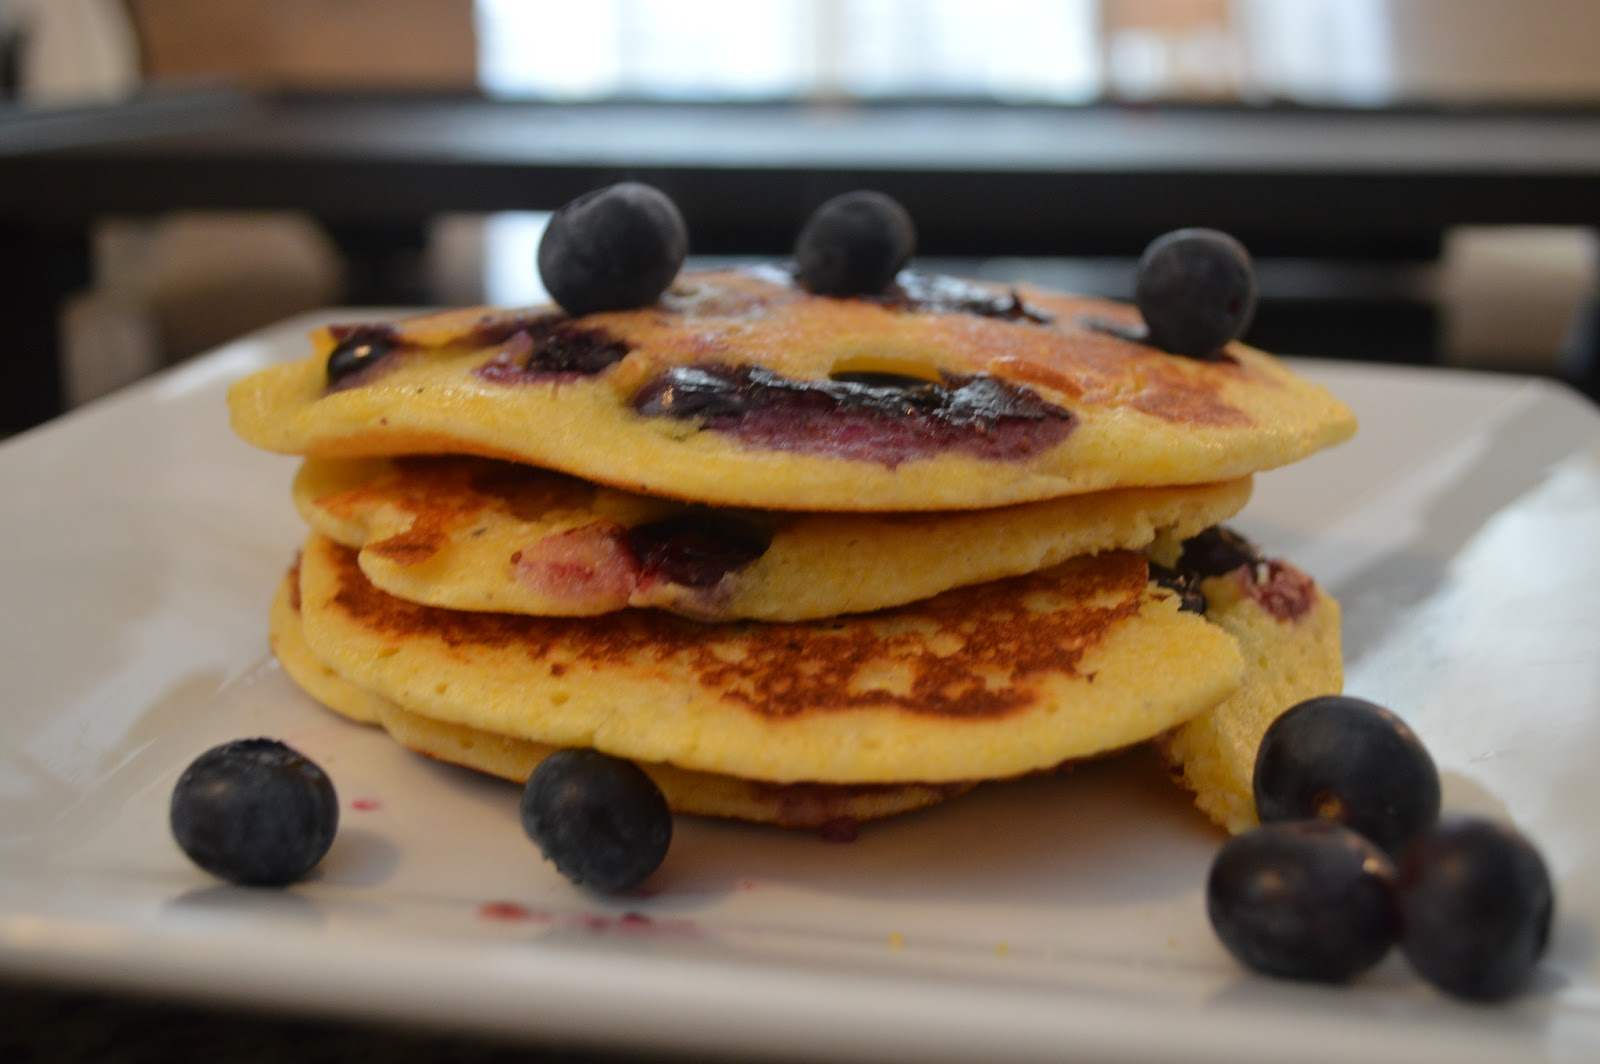 Blueberry Cornmeal Pancakes - Girl and Her Kitchen